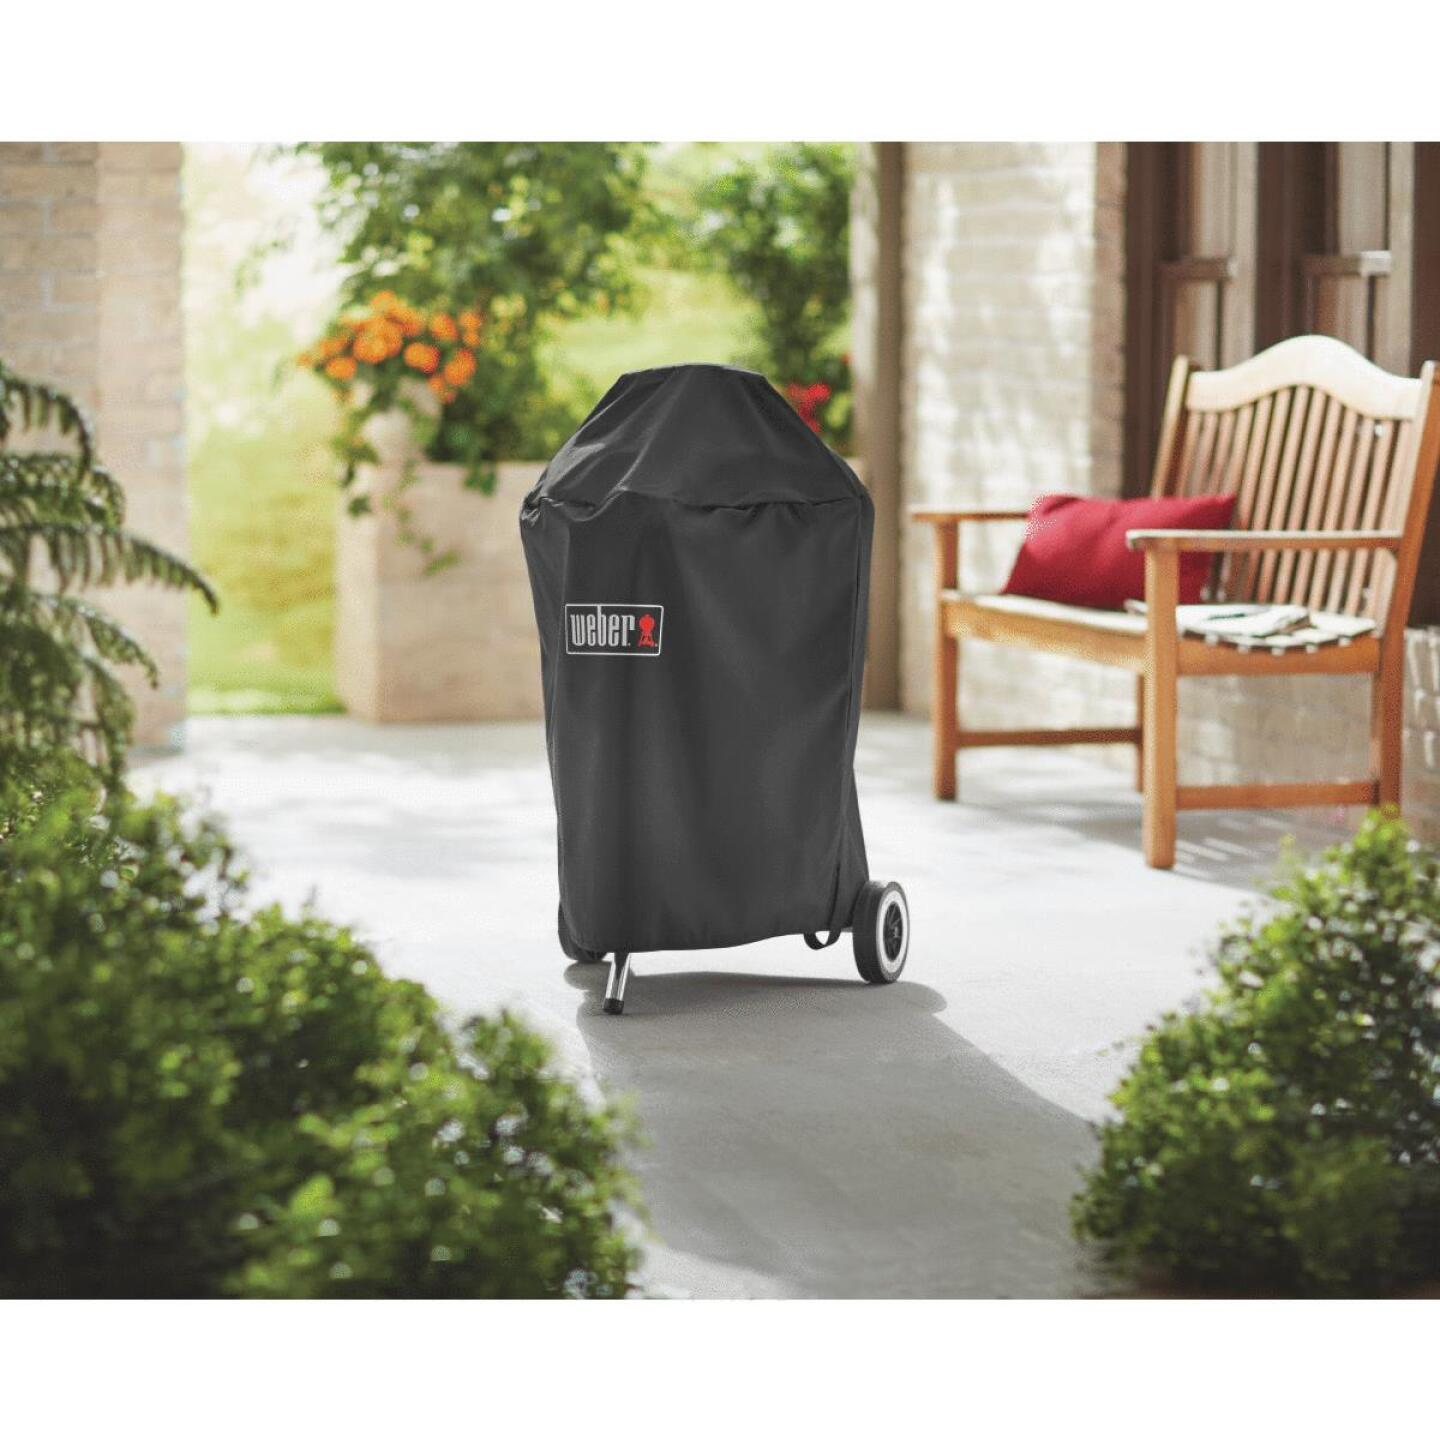 Weber Premium 20.5 In. Black Polyester Kettle Grill Cover Image 2